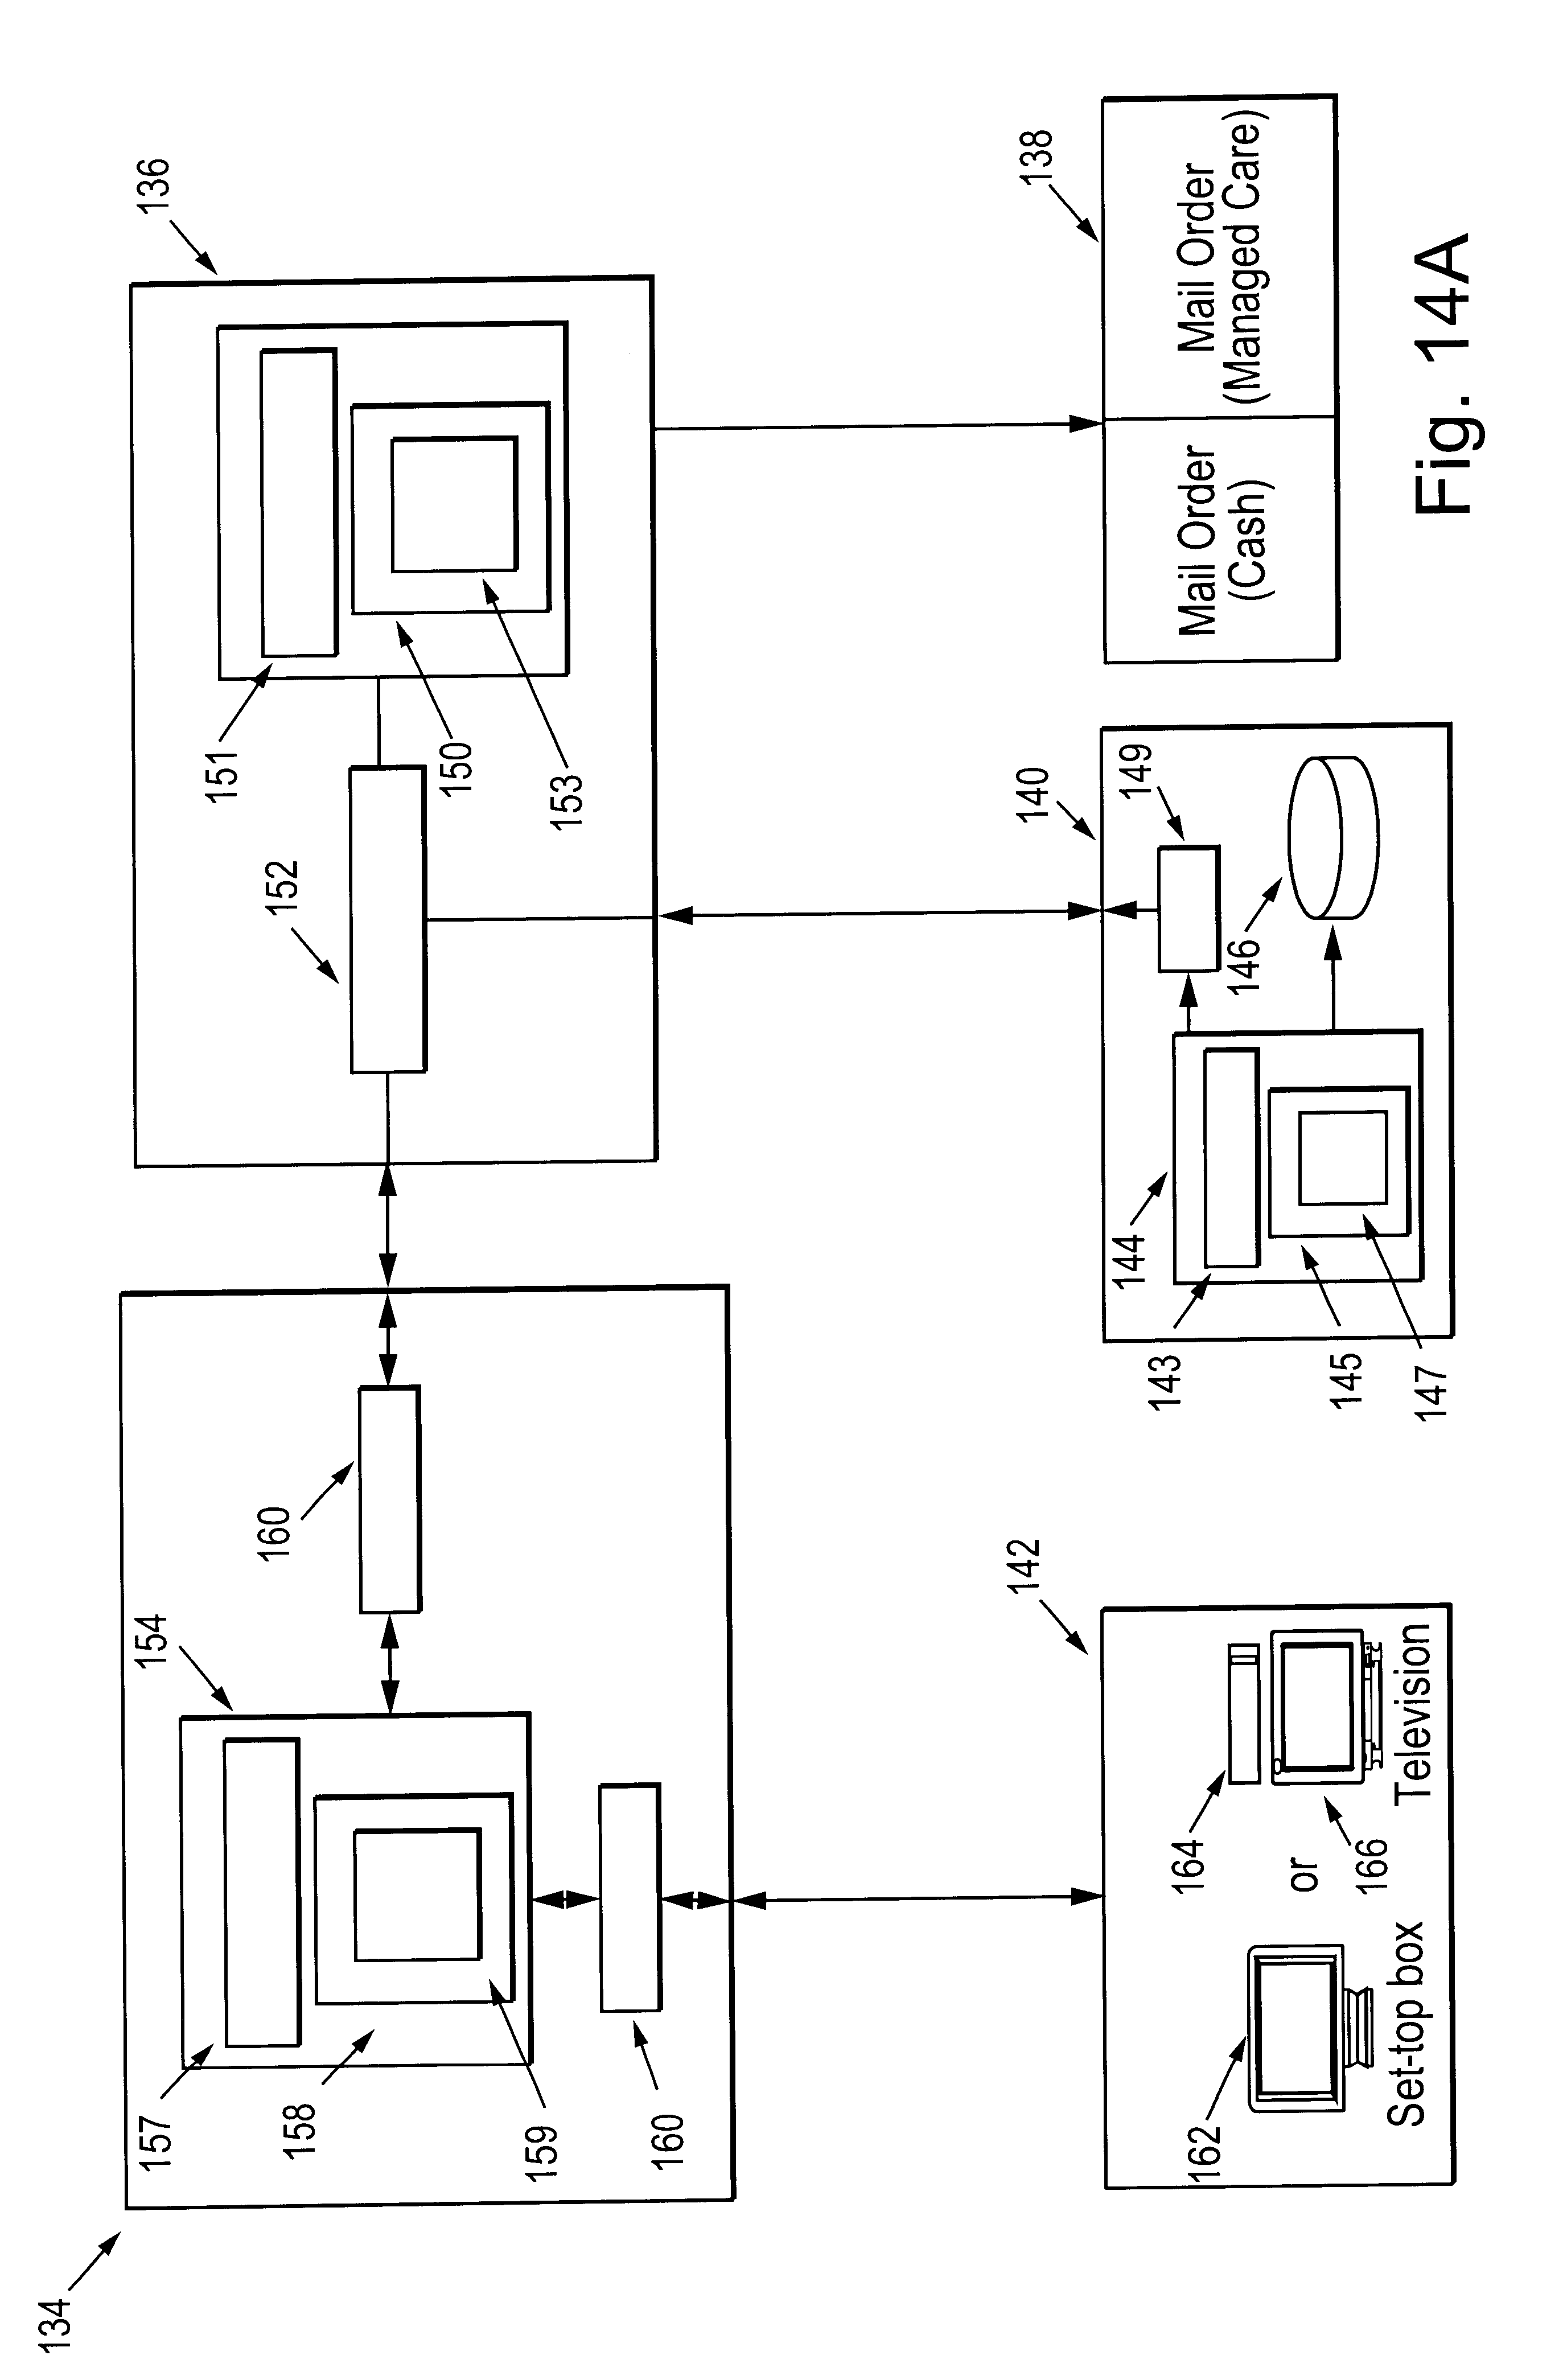 Patent us6583720 command console for home monitoring for Interior home monitoring system